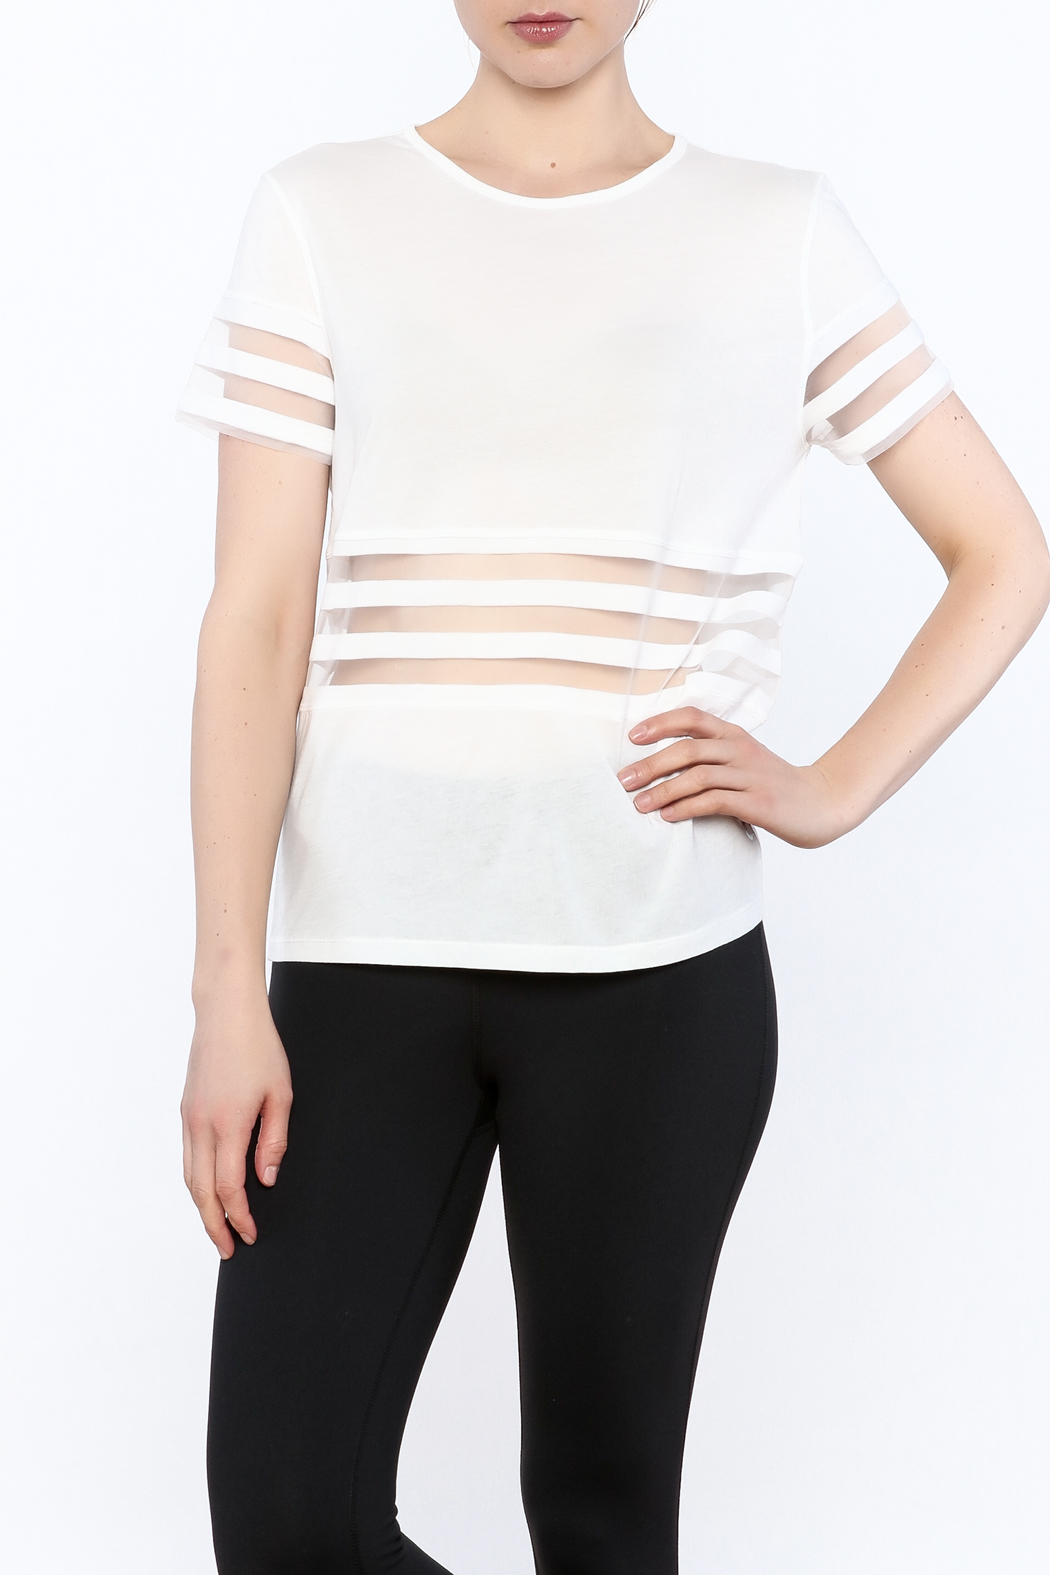 Titika Active Couture Bandit T-Shirt - Front Cropped Image